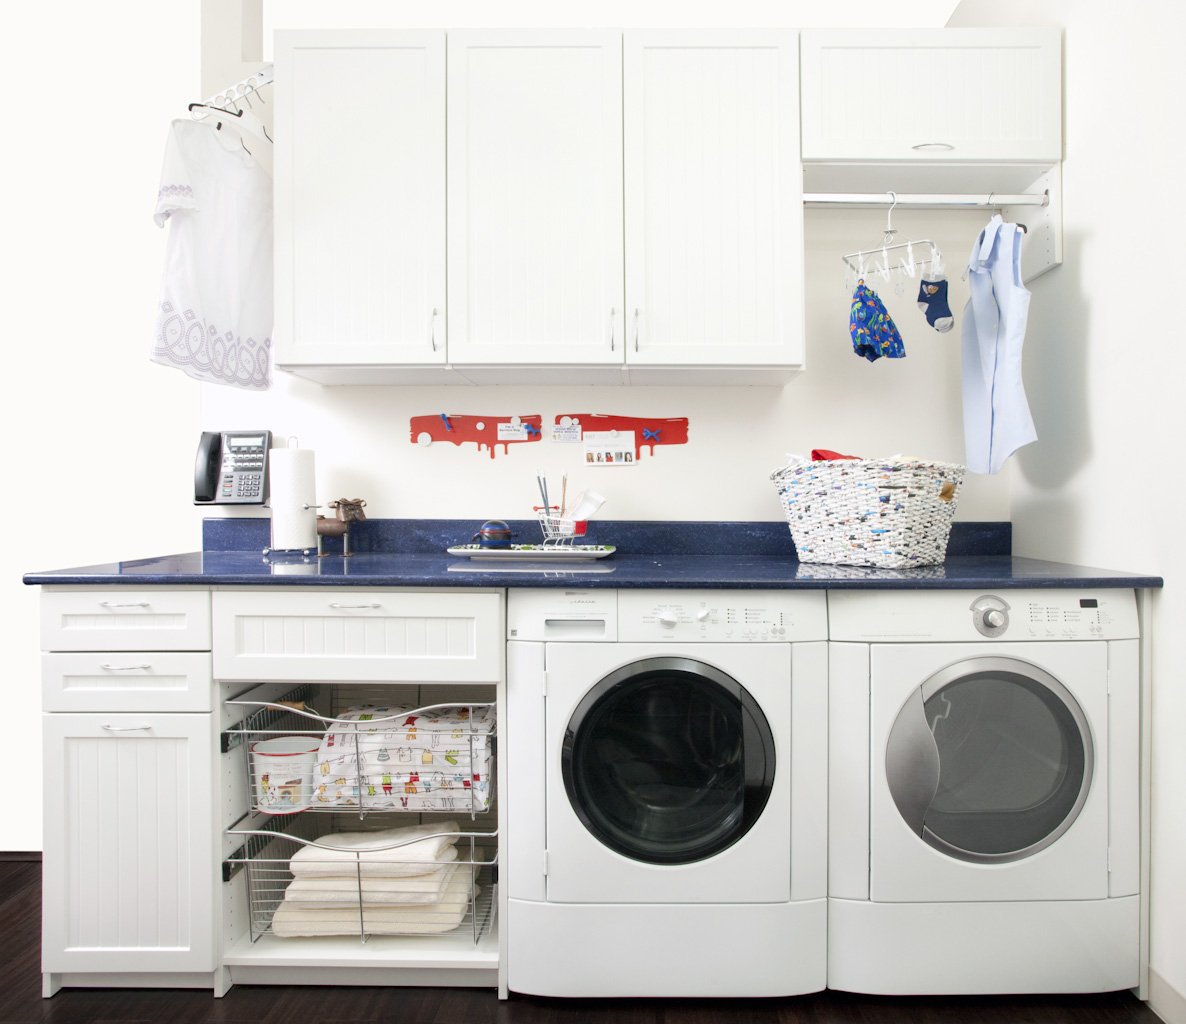 Functional laundry room with cabinets and washer dryer combination